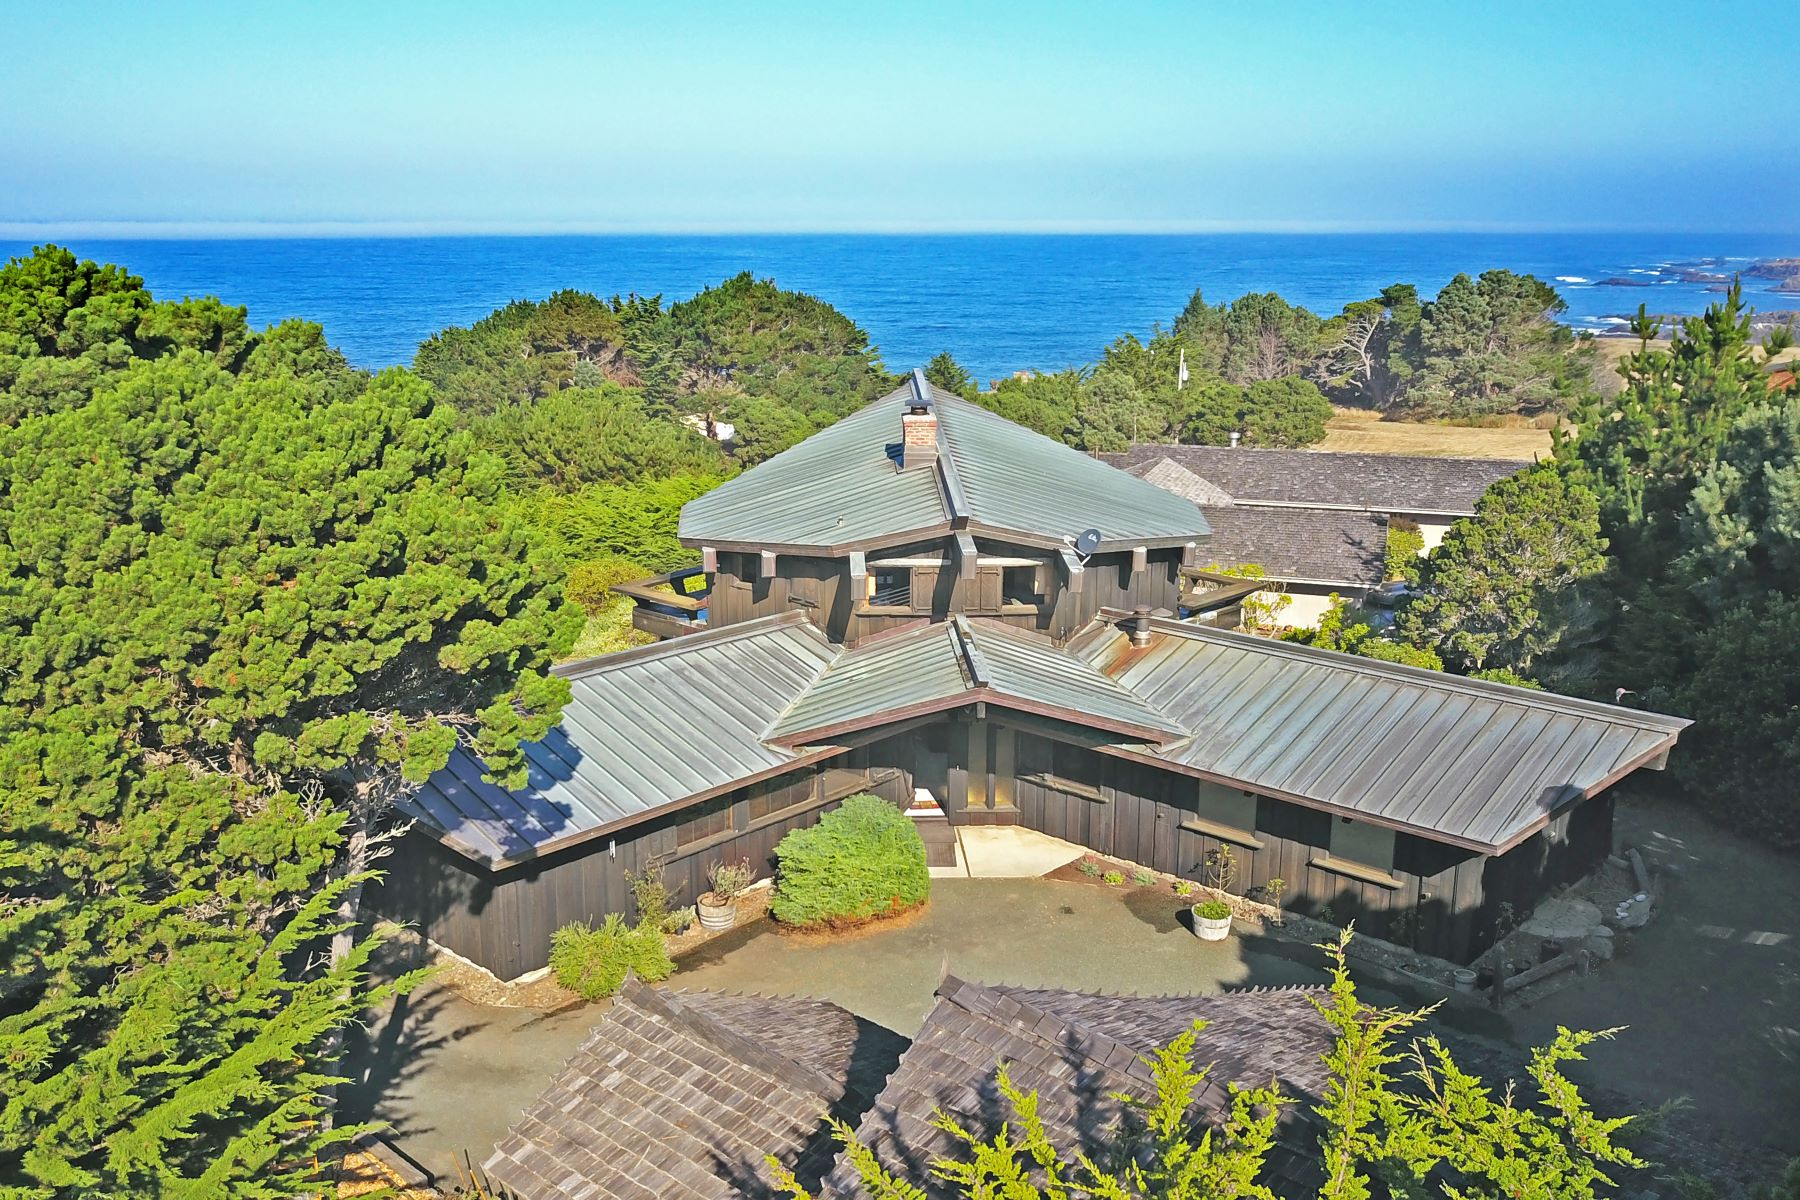 Single Family Home for Sale at Ocean View Timbers 45621 Cypress Drive Mendocino, California 95460 United States